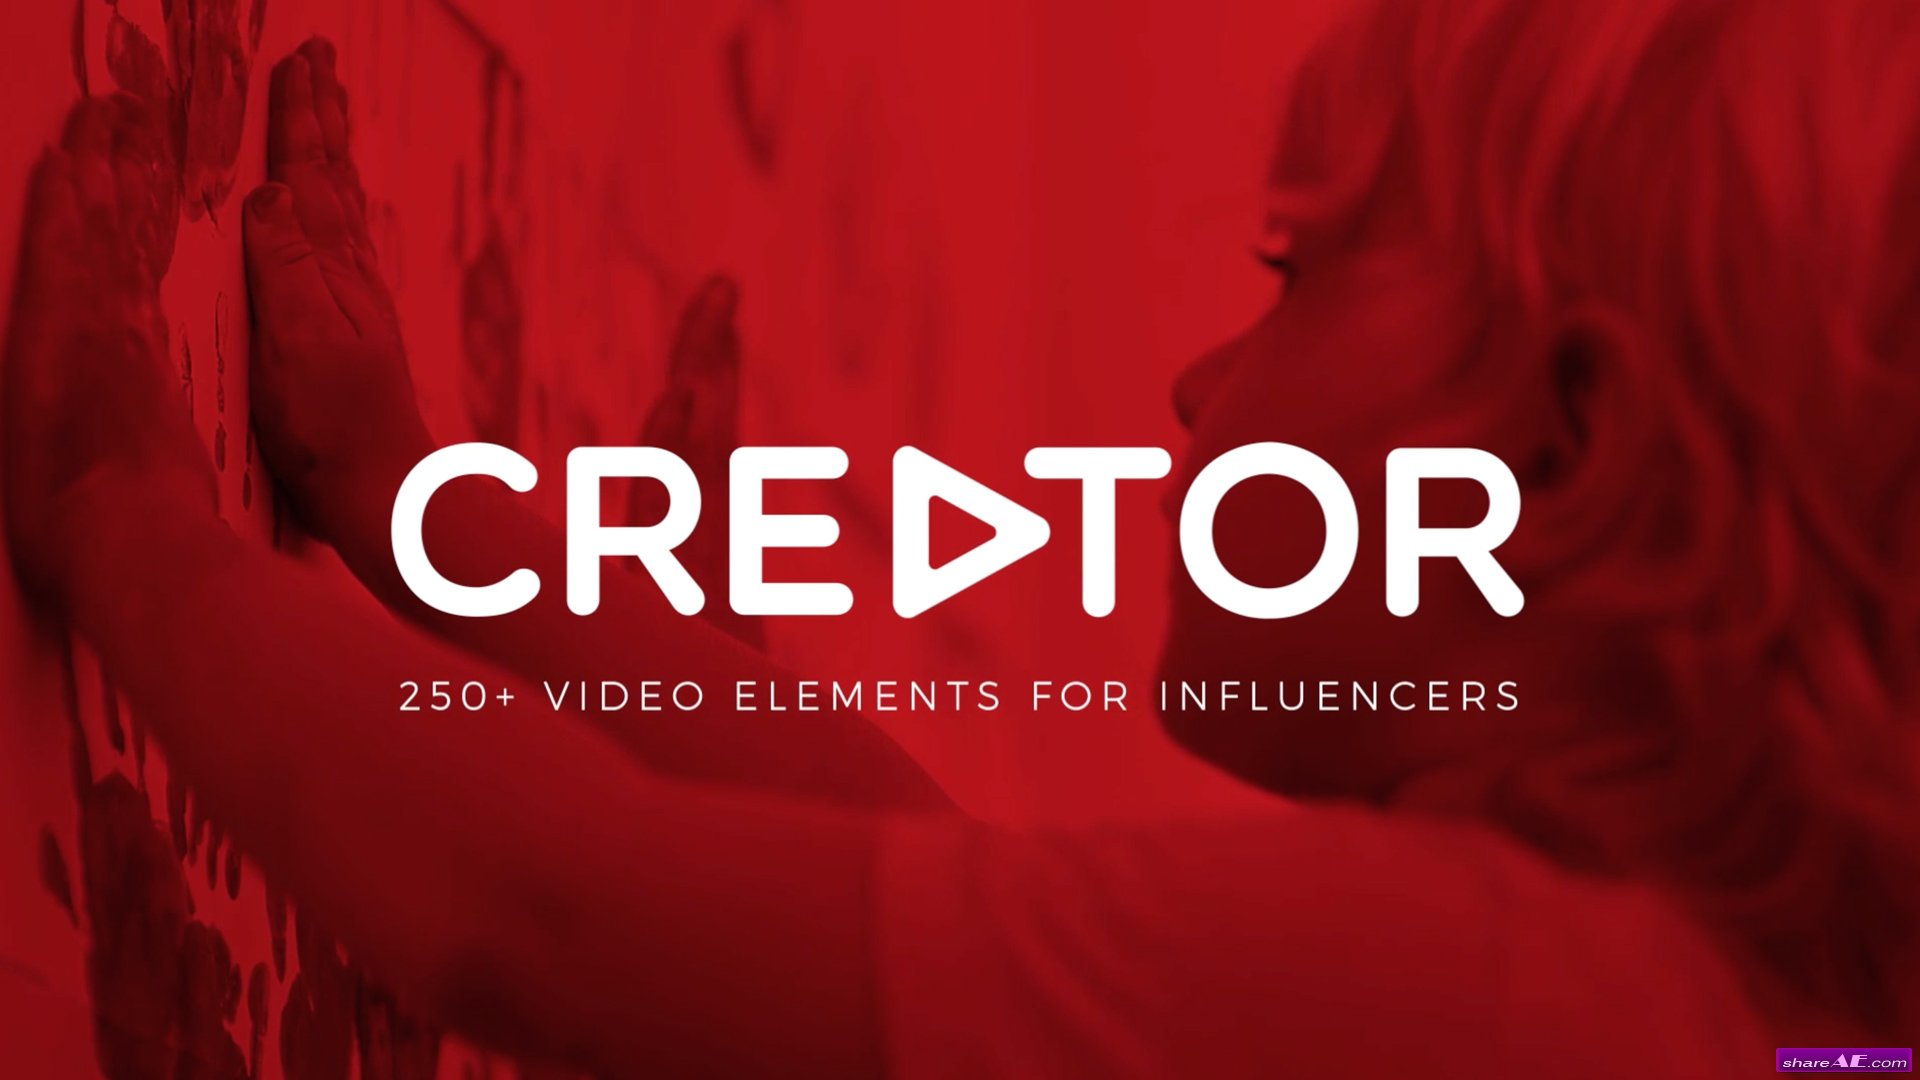 CREATOR: 250+ ELEMENTS FOR INFLUENCERS AND VLOGGERS - MOTION